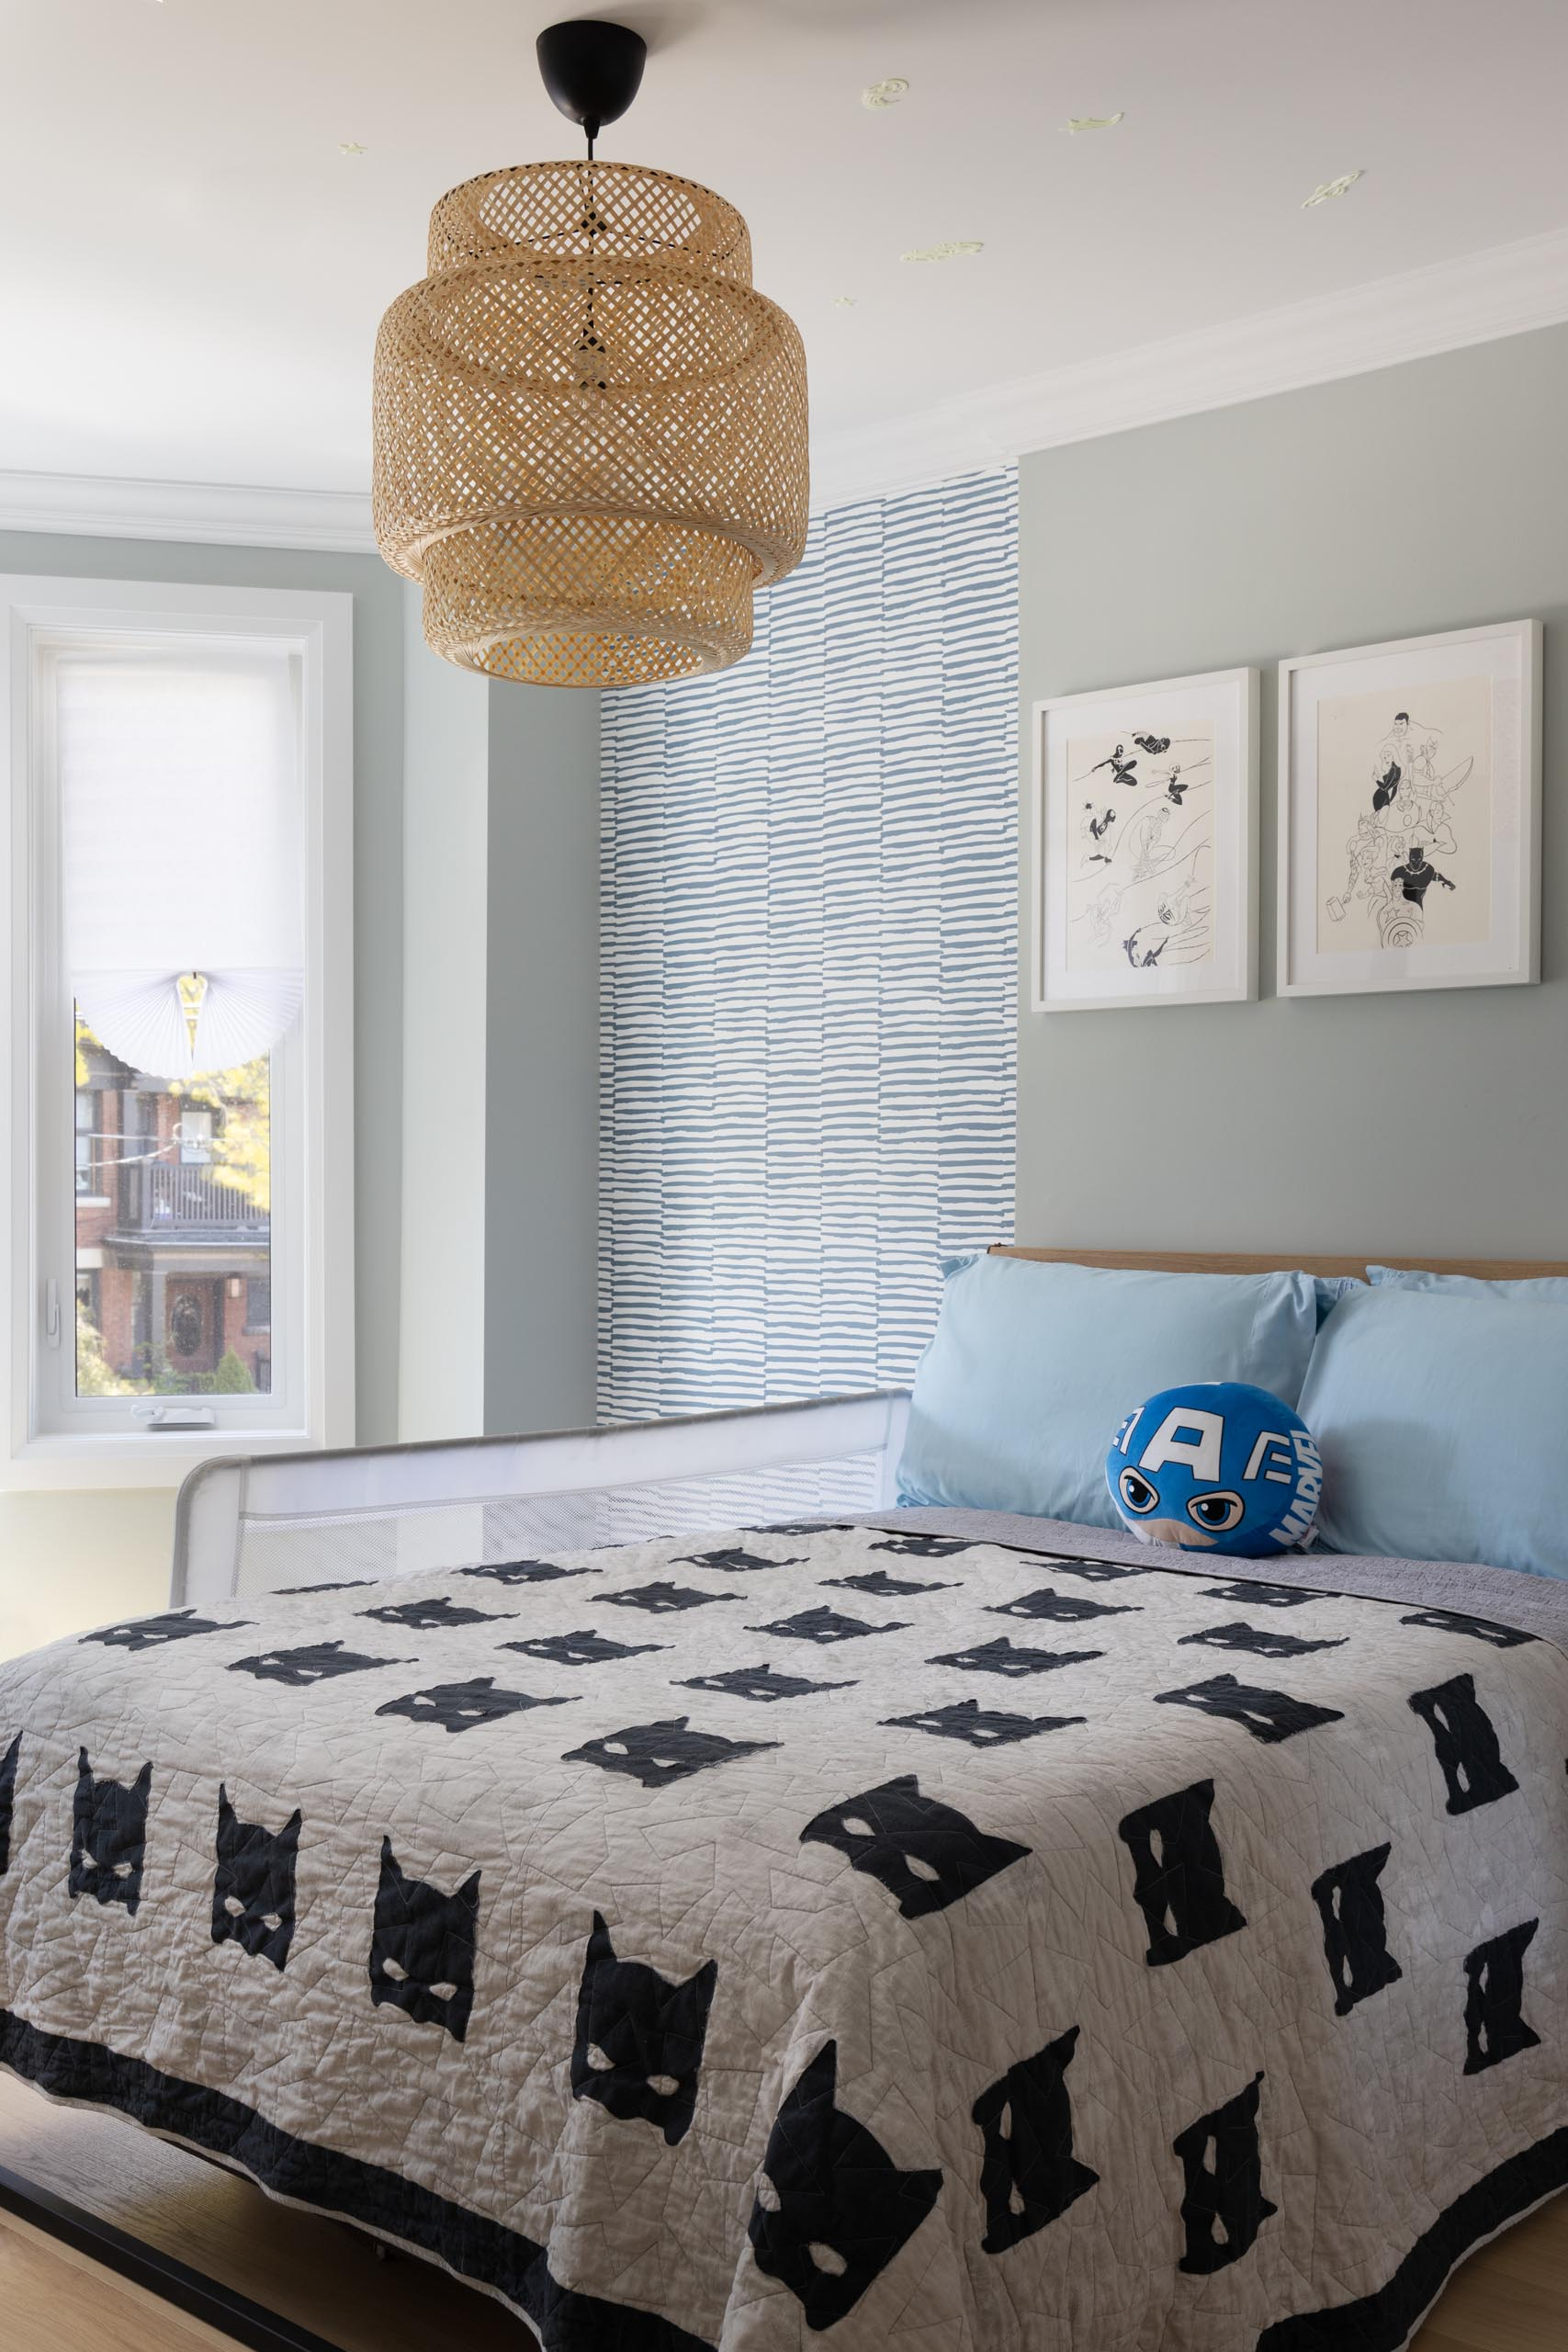 In this contemporary bedroom, there's a woven light fixture, patterned wallpaper, and artwork.